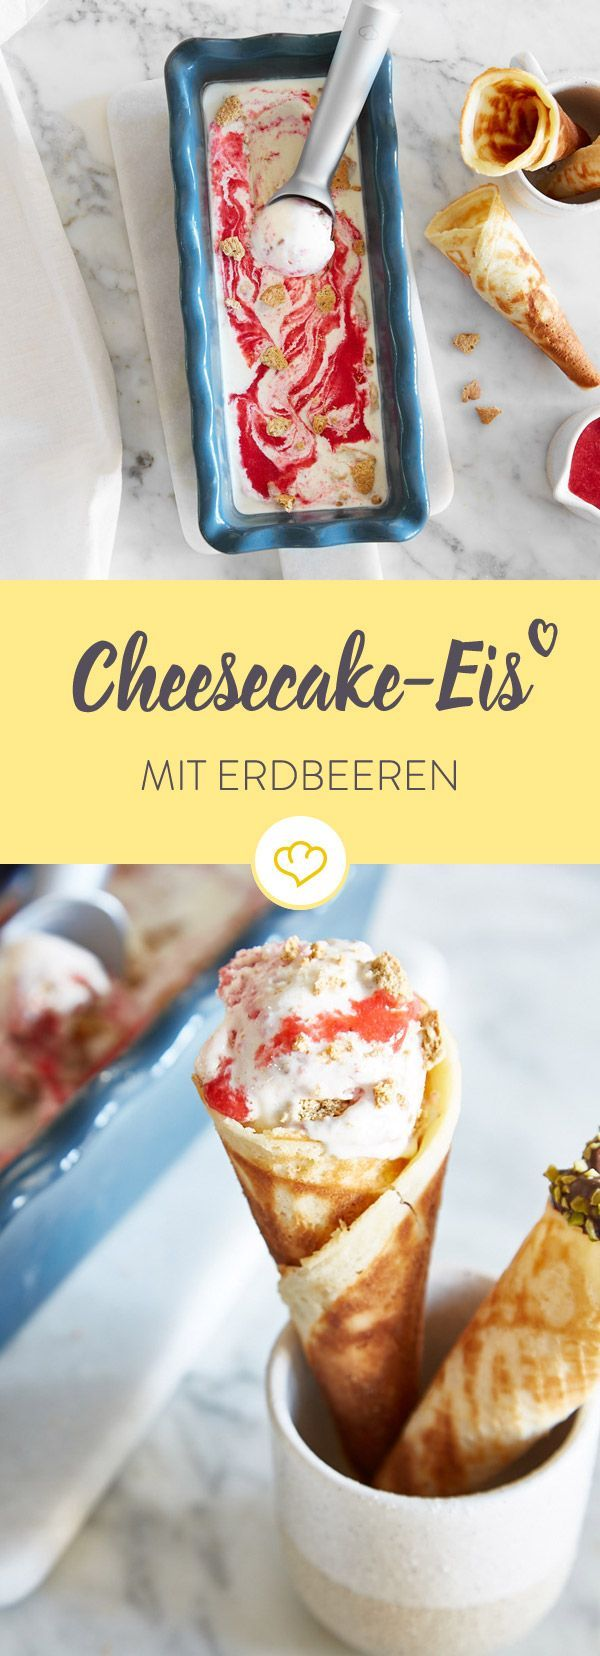 strawberry cheesecake eis ohne ei rezept leckere rezepte tasty recipies. Black Bedroom Furniture Sets. Home Design Ideas